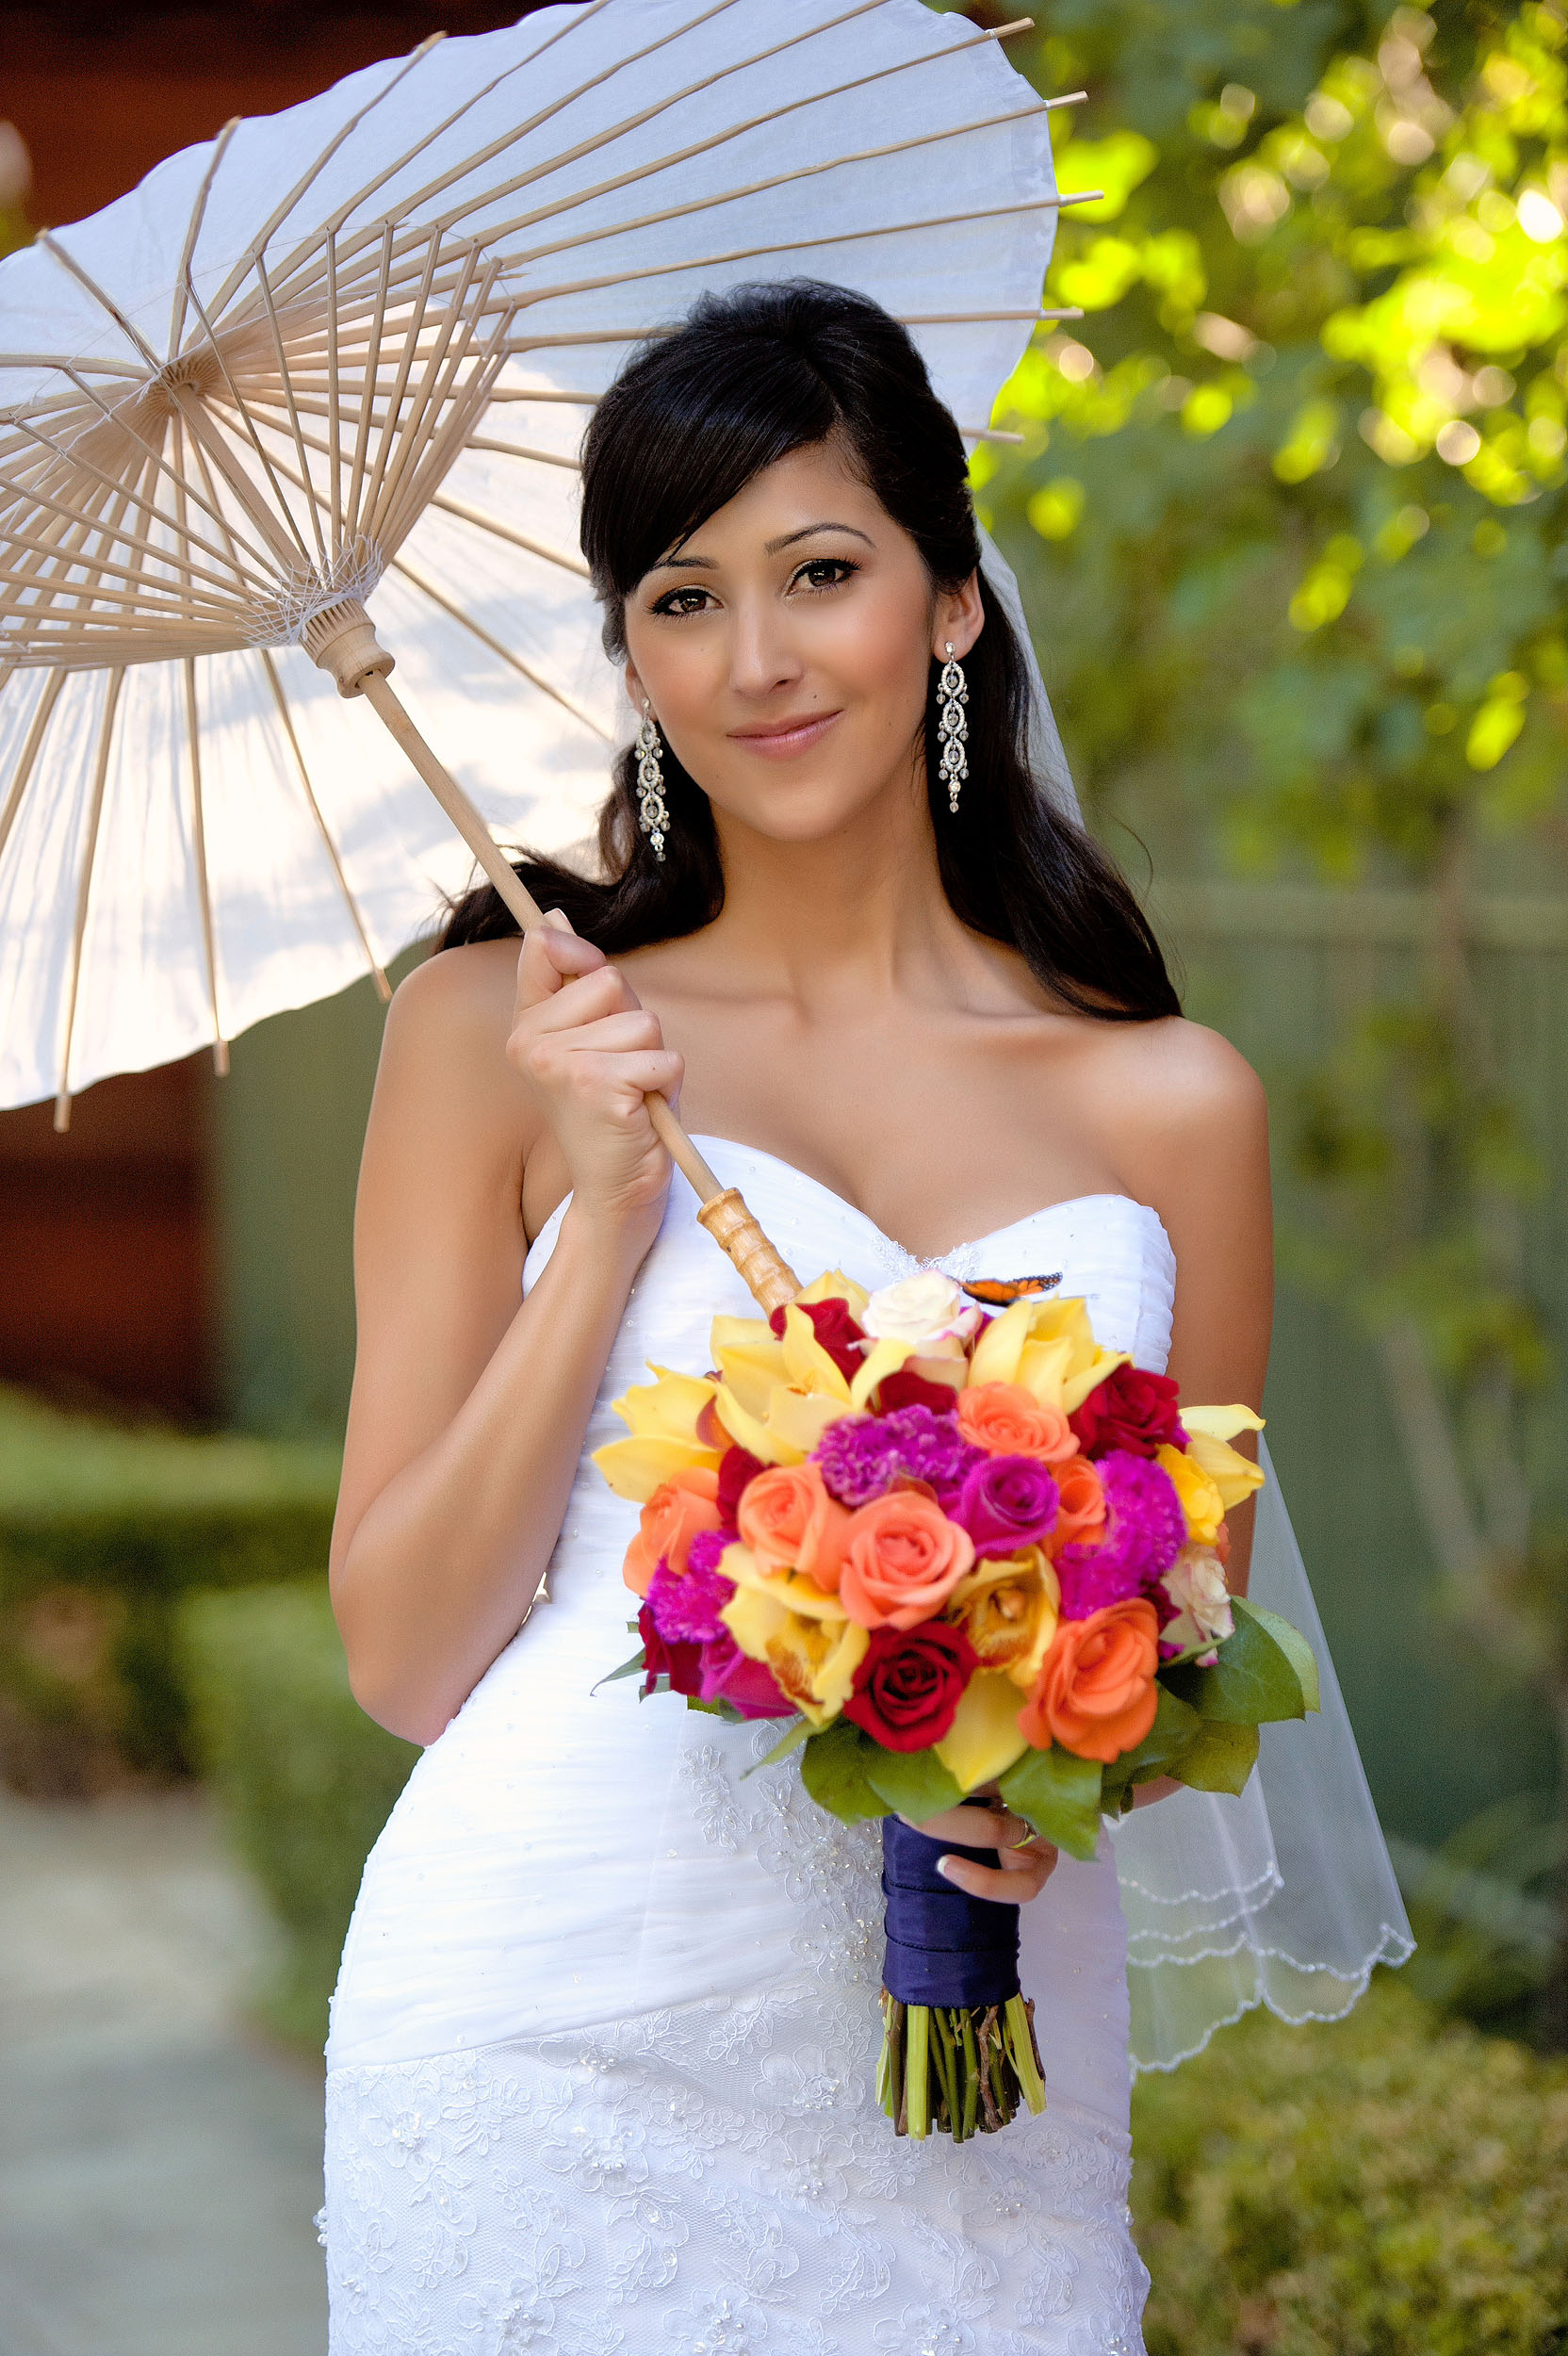 Bride with bouquet and parasol at A.K. Smiley Public Library in Redlands.